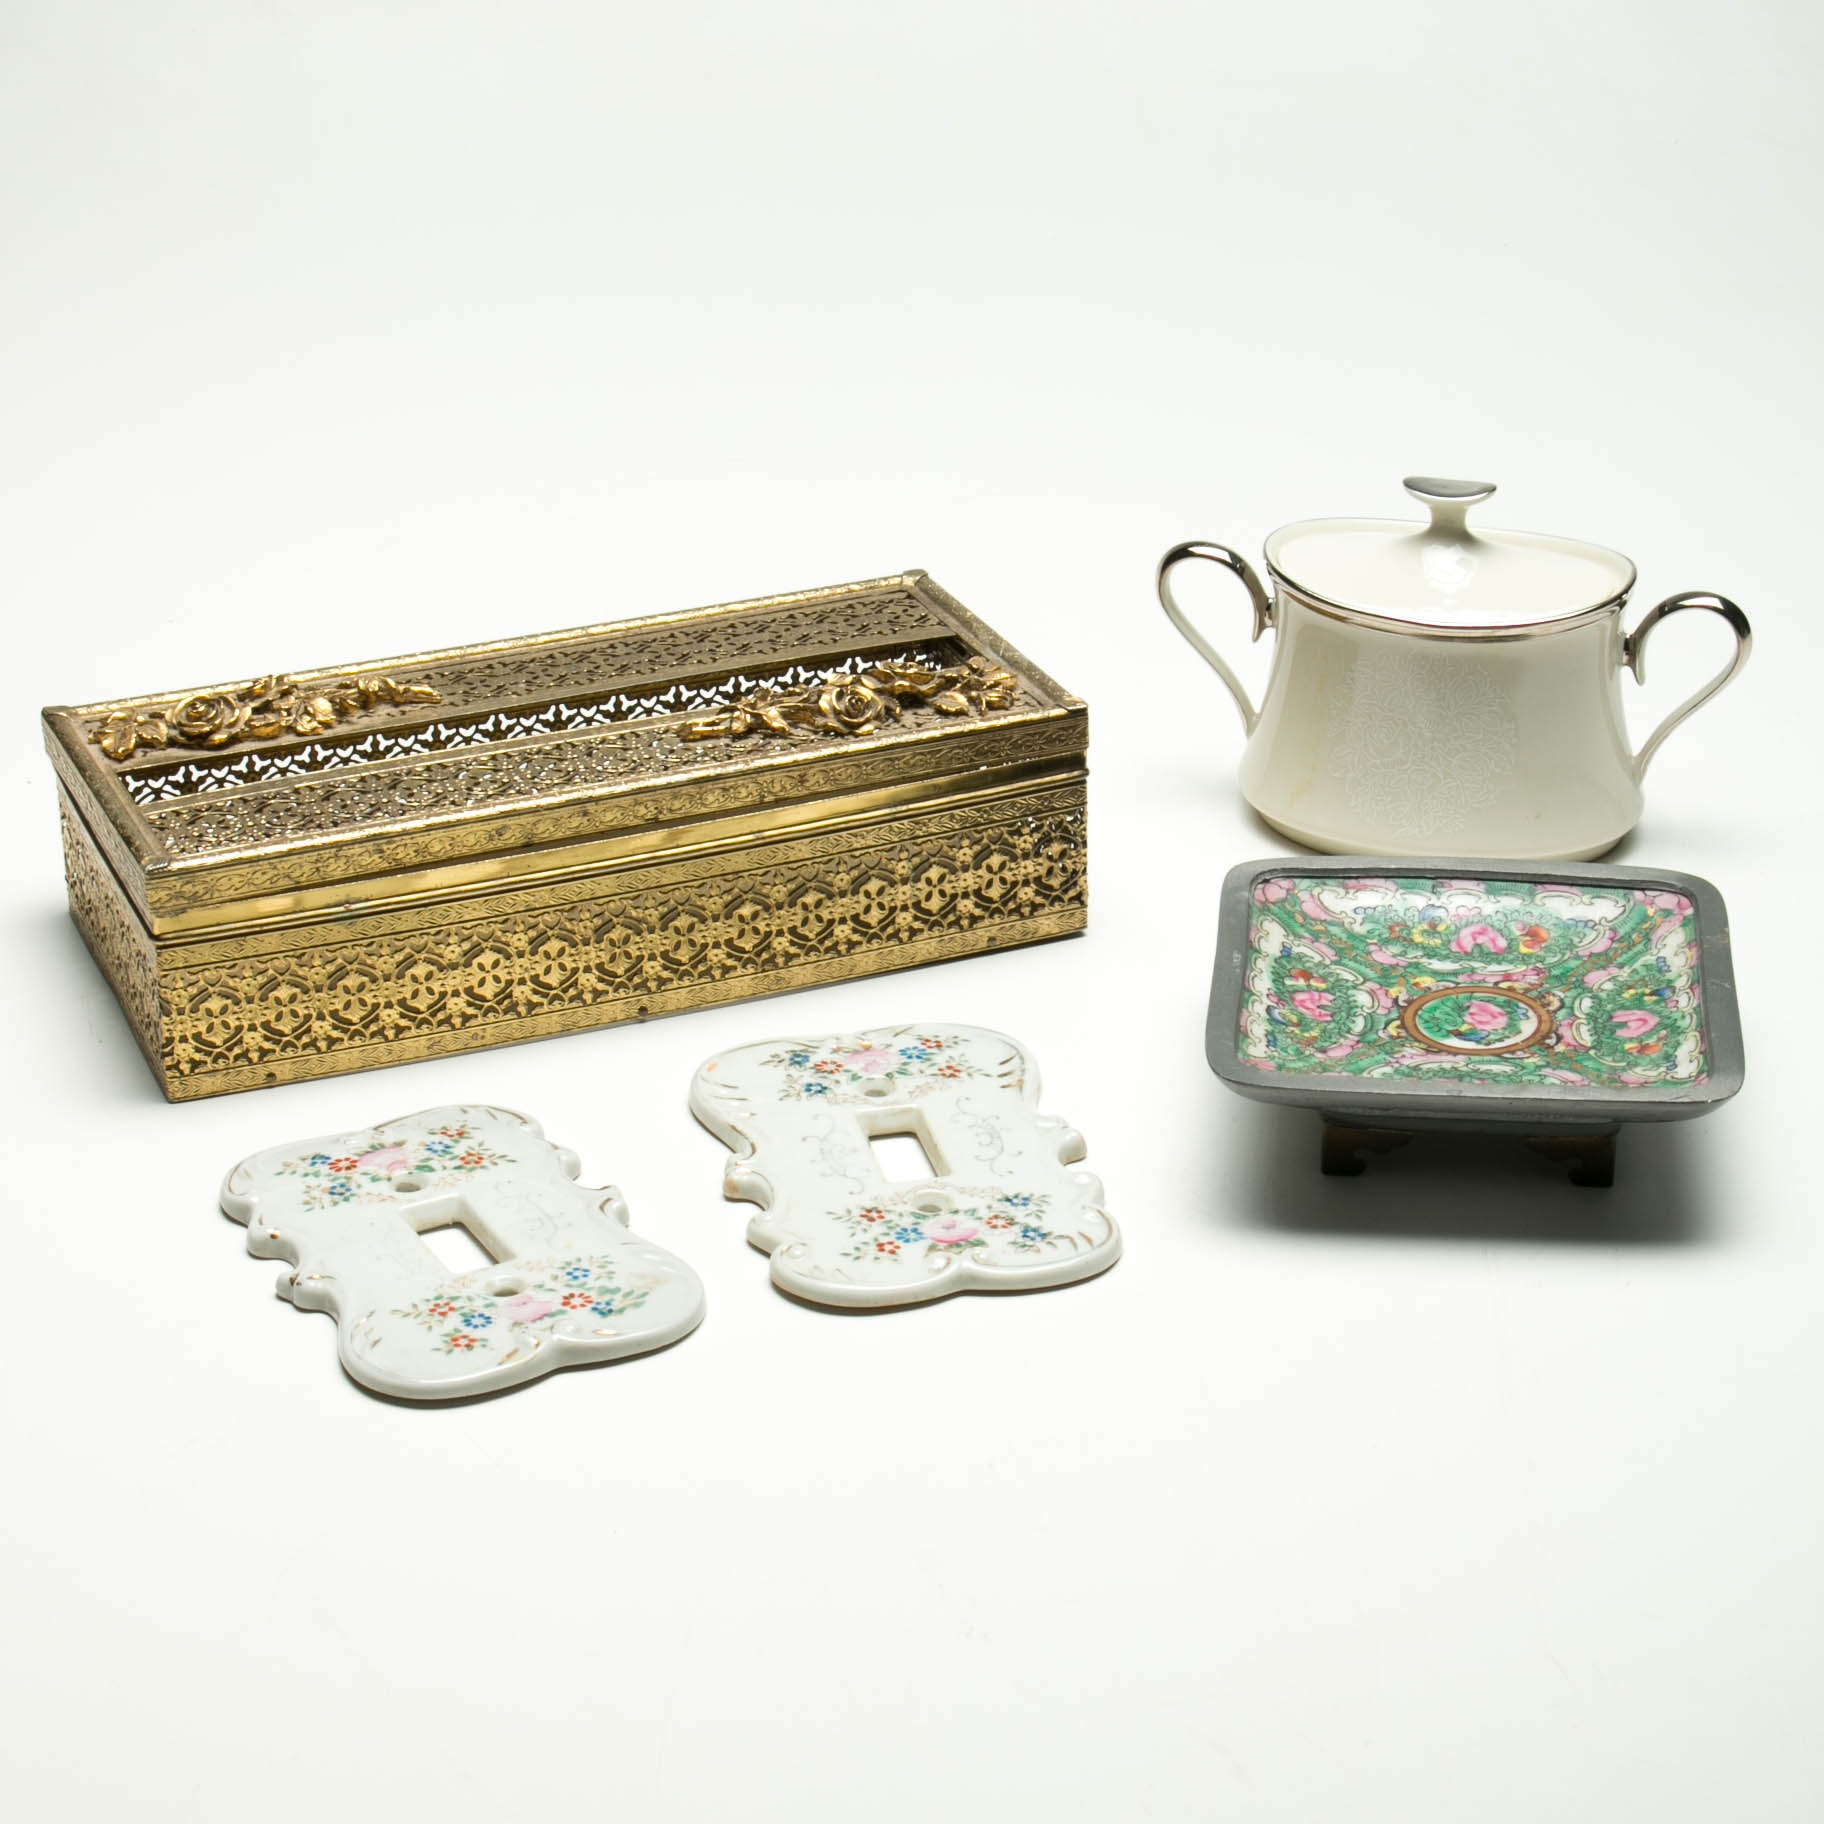 Collection of Decorative Porcelain and Metal Accents